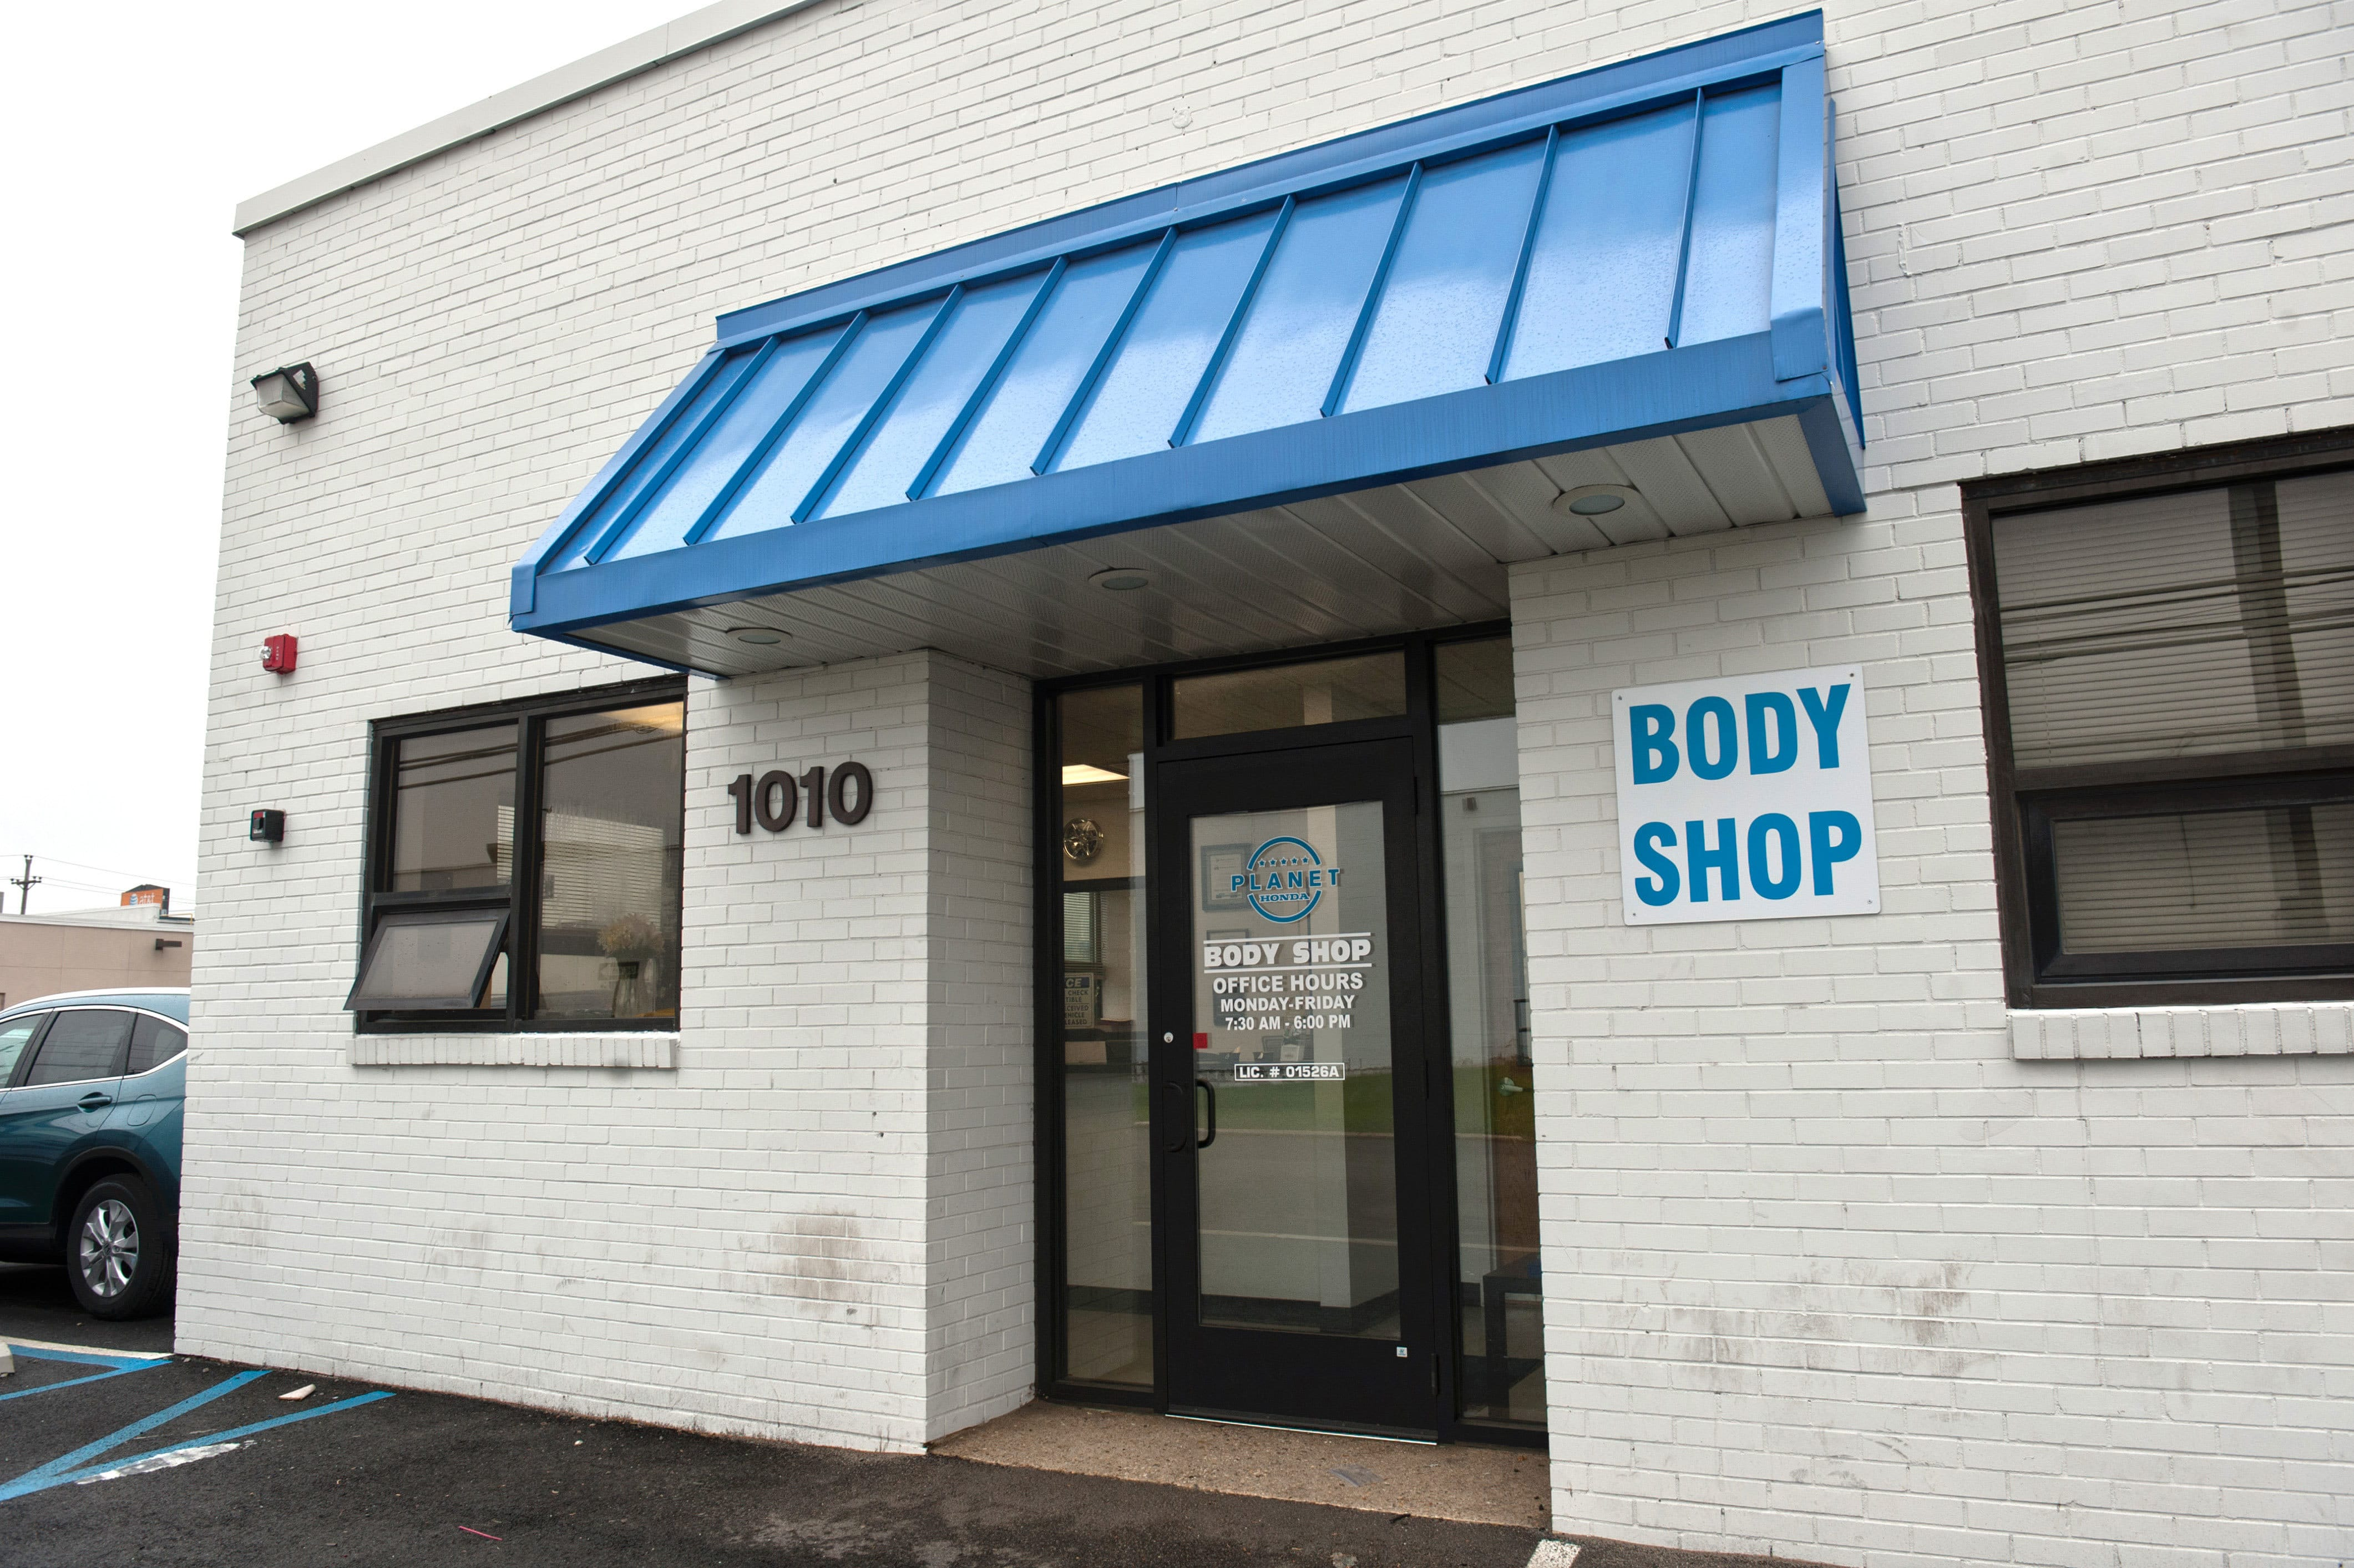 body shop services - planet honda new jersey